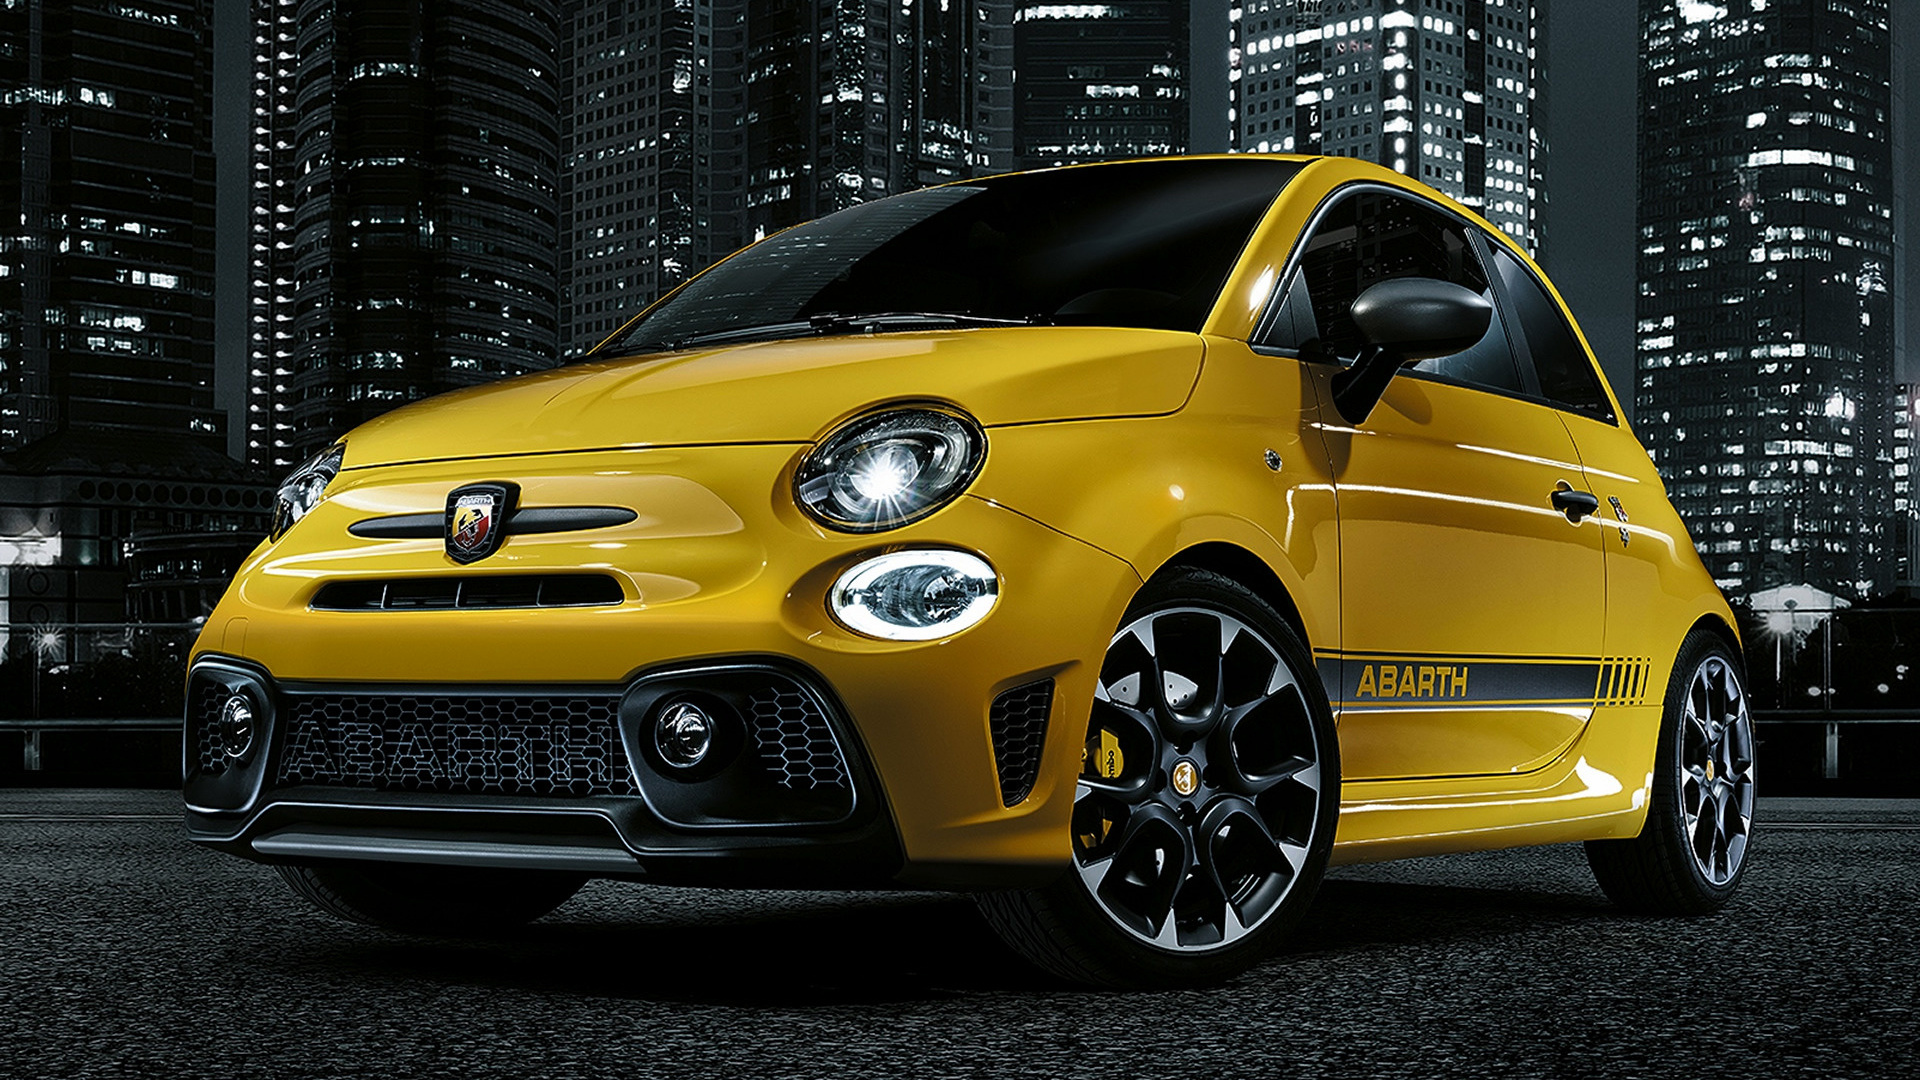 Fiat 500x Abarth 2018 >> Abarth 595 Competizione (2016) Wallpapers and HD Images - Car Pixel